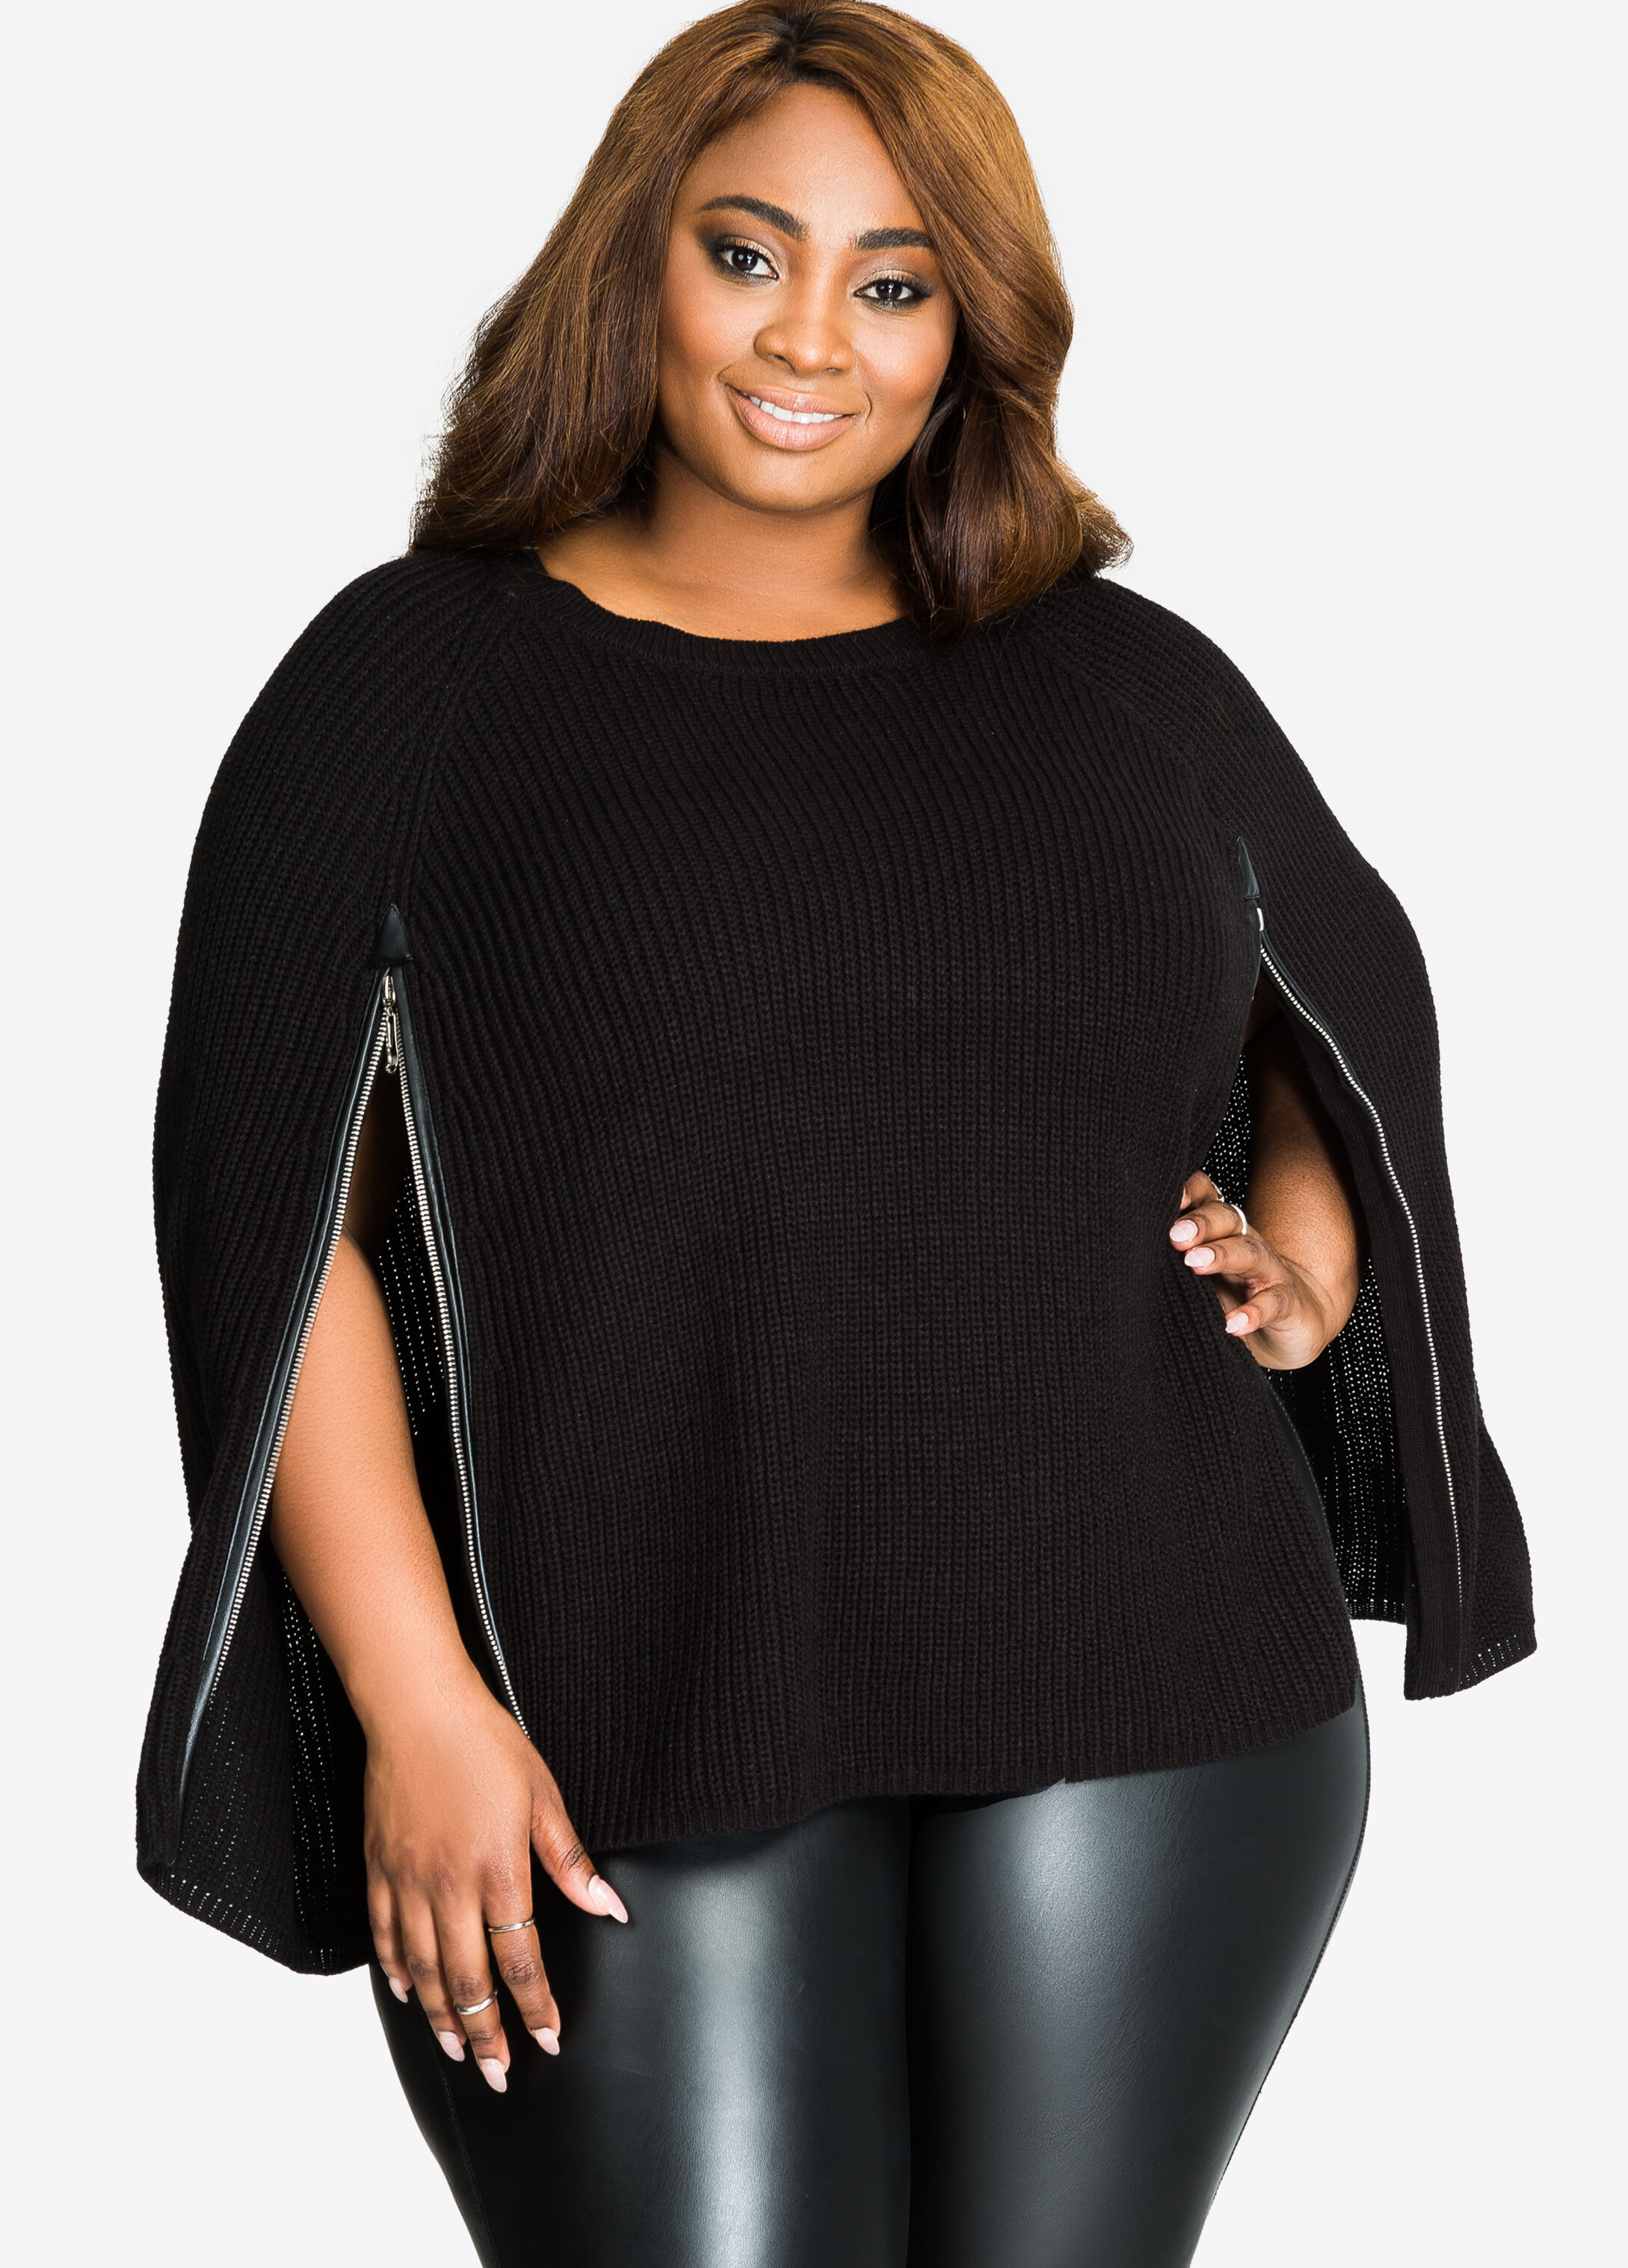 Zipper Front Sweater Cape Black - Clearance